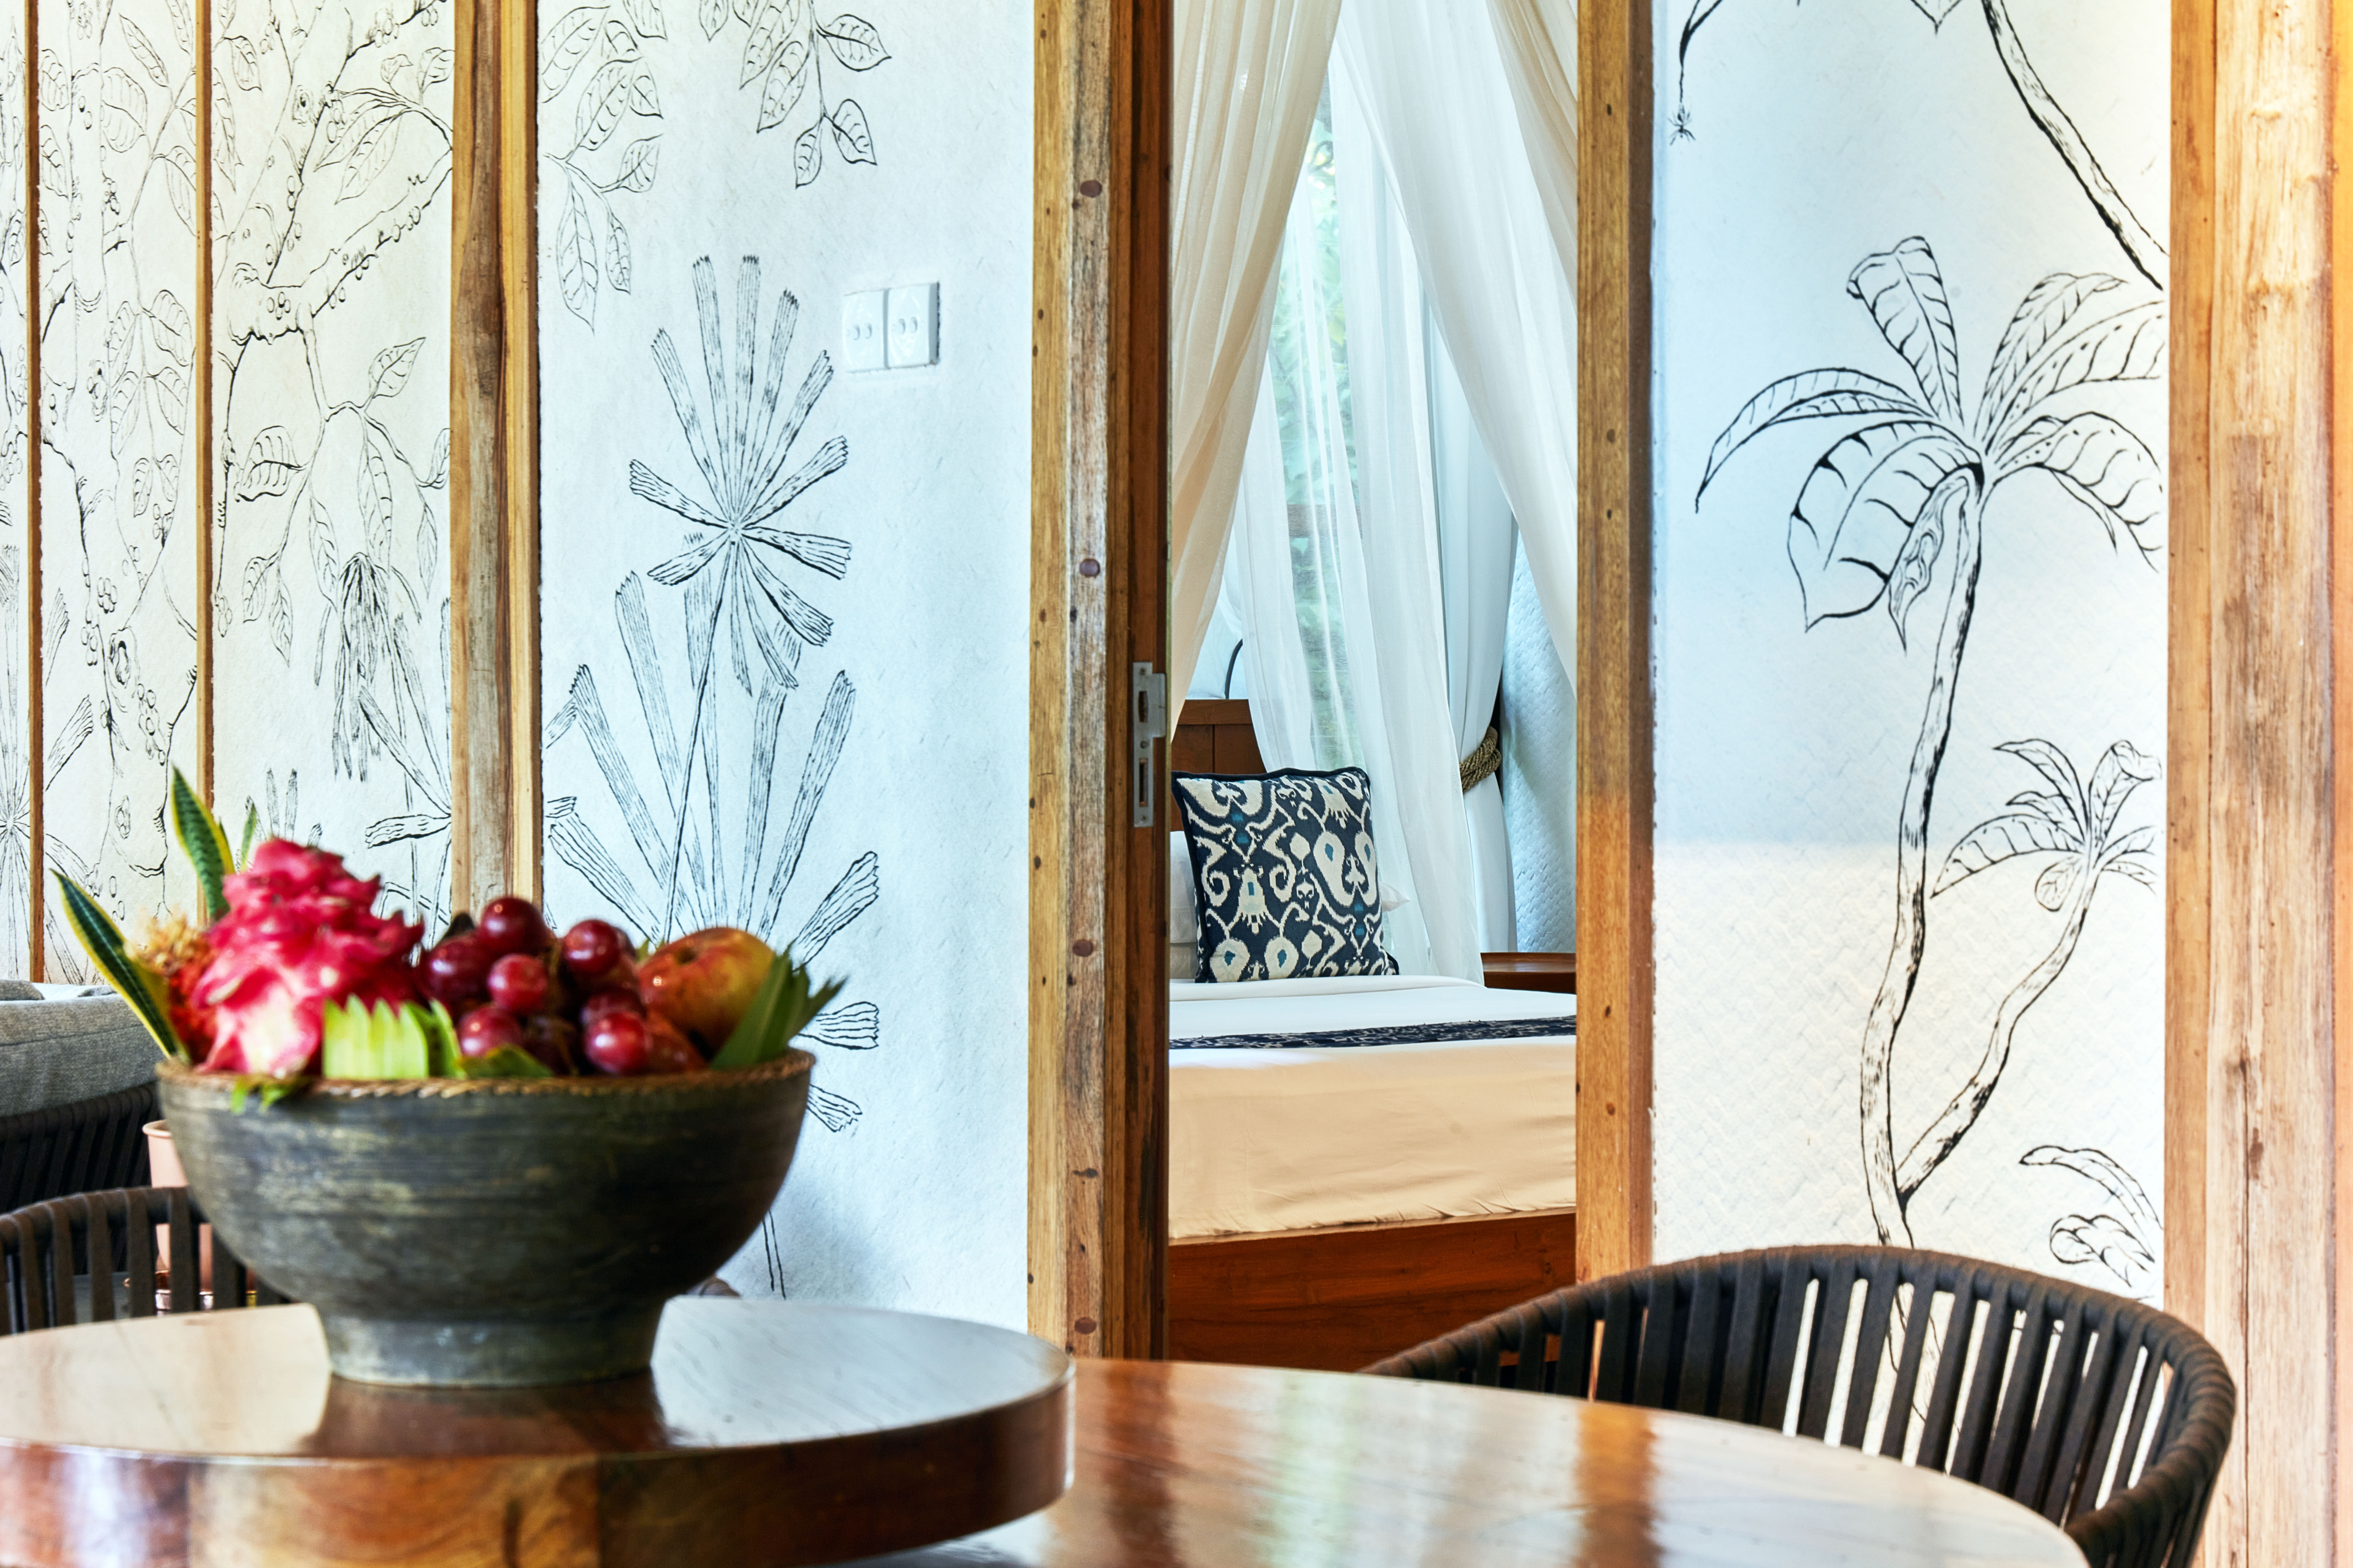 cropped_table_fruit_bowl_mural_wall_jungle_lodge